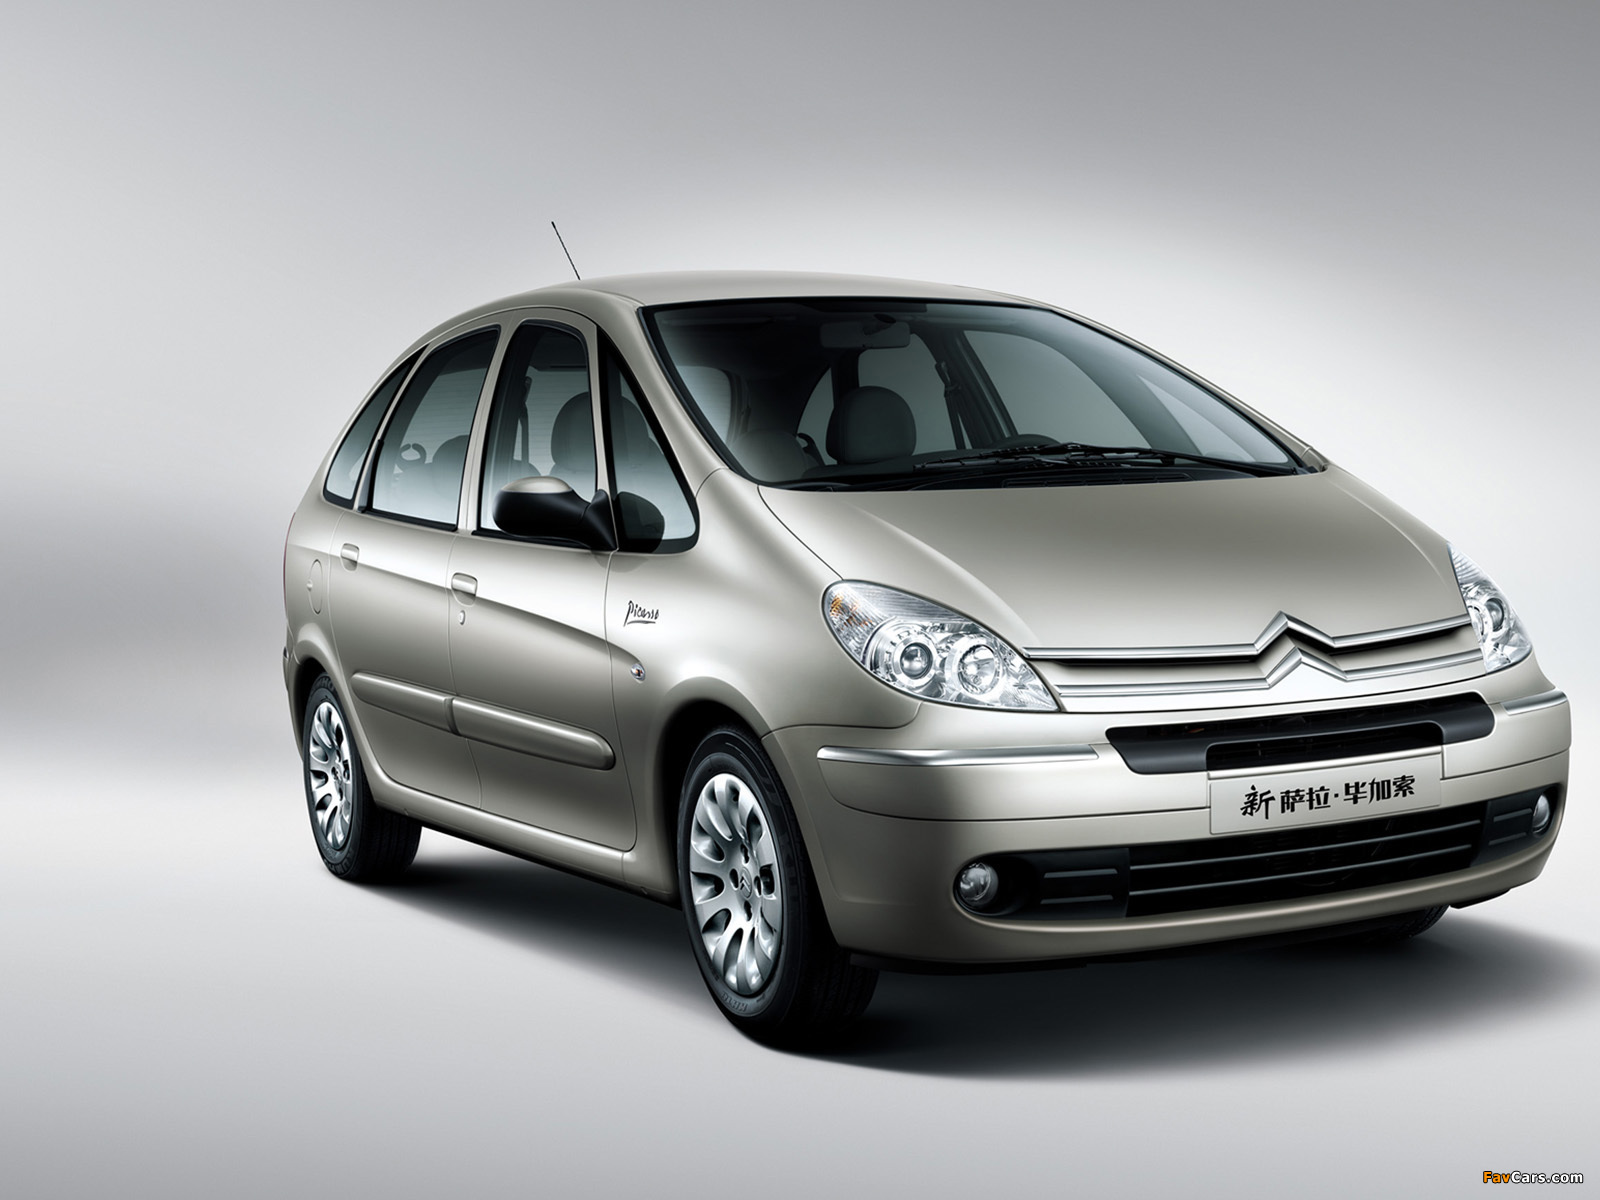 2007 citroen xsara photos informations articles. Black Bedroom Furniture Sets. Home Design Ideas